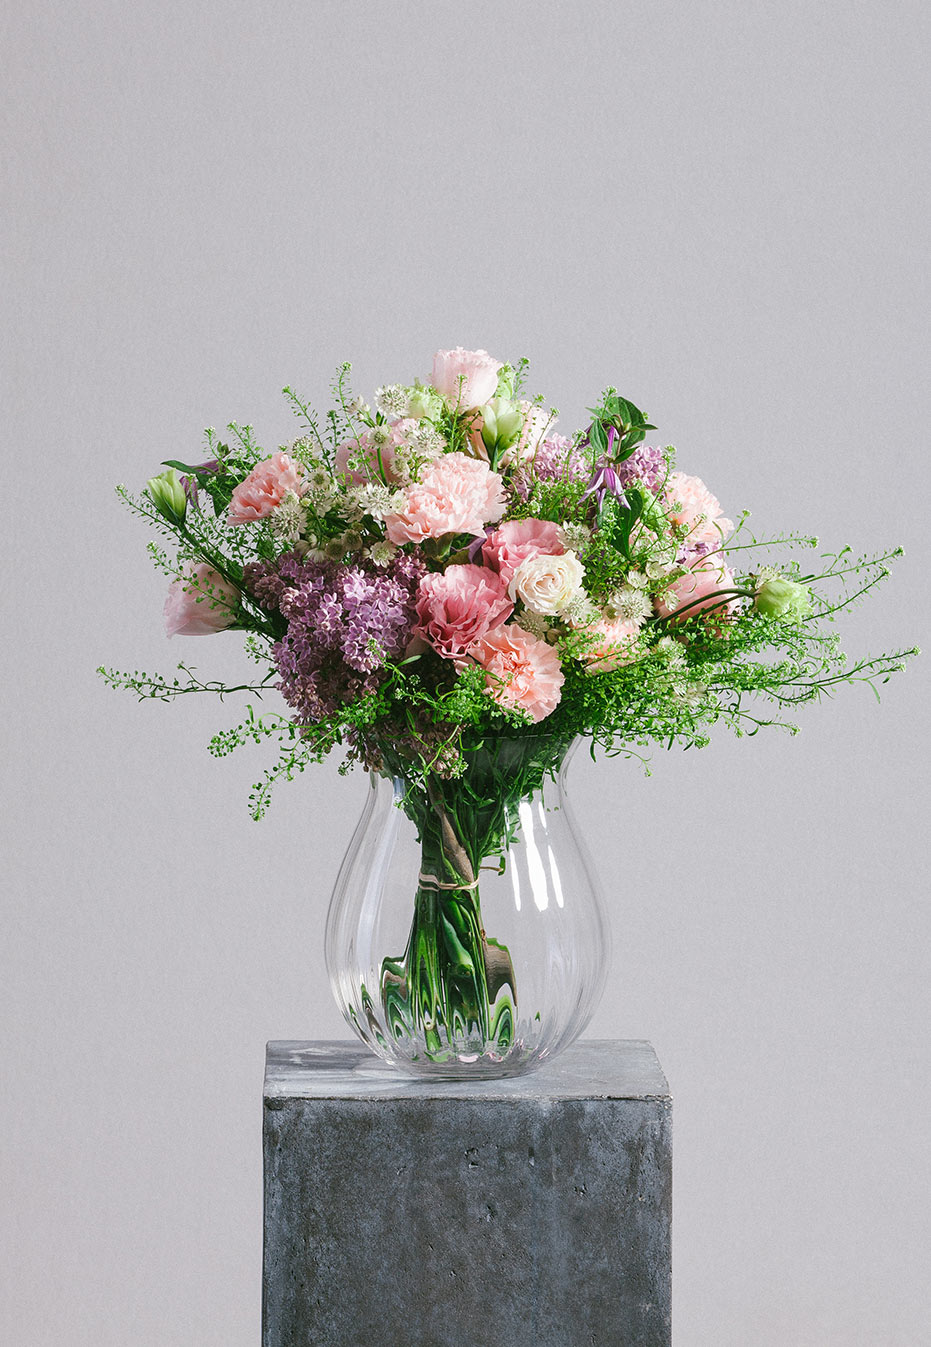 flower bouquet of carnation and clematis by flannel flowers